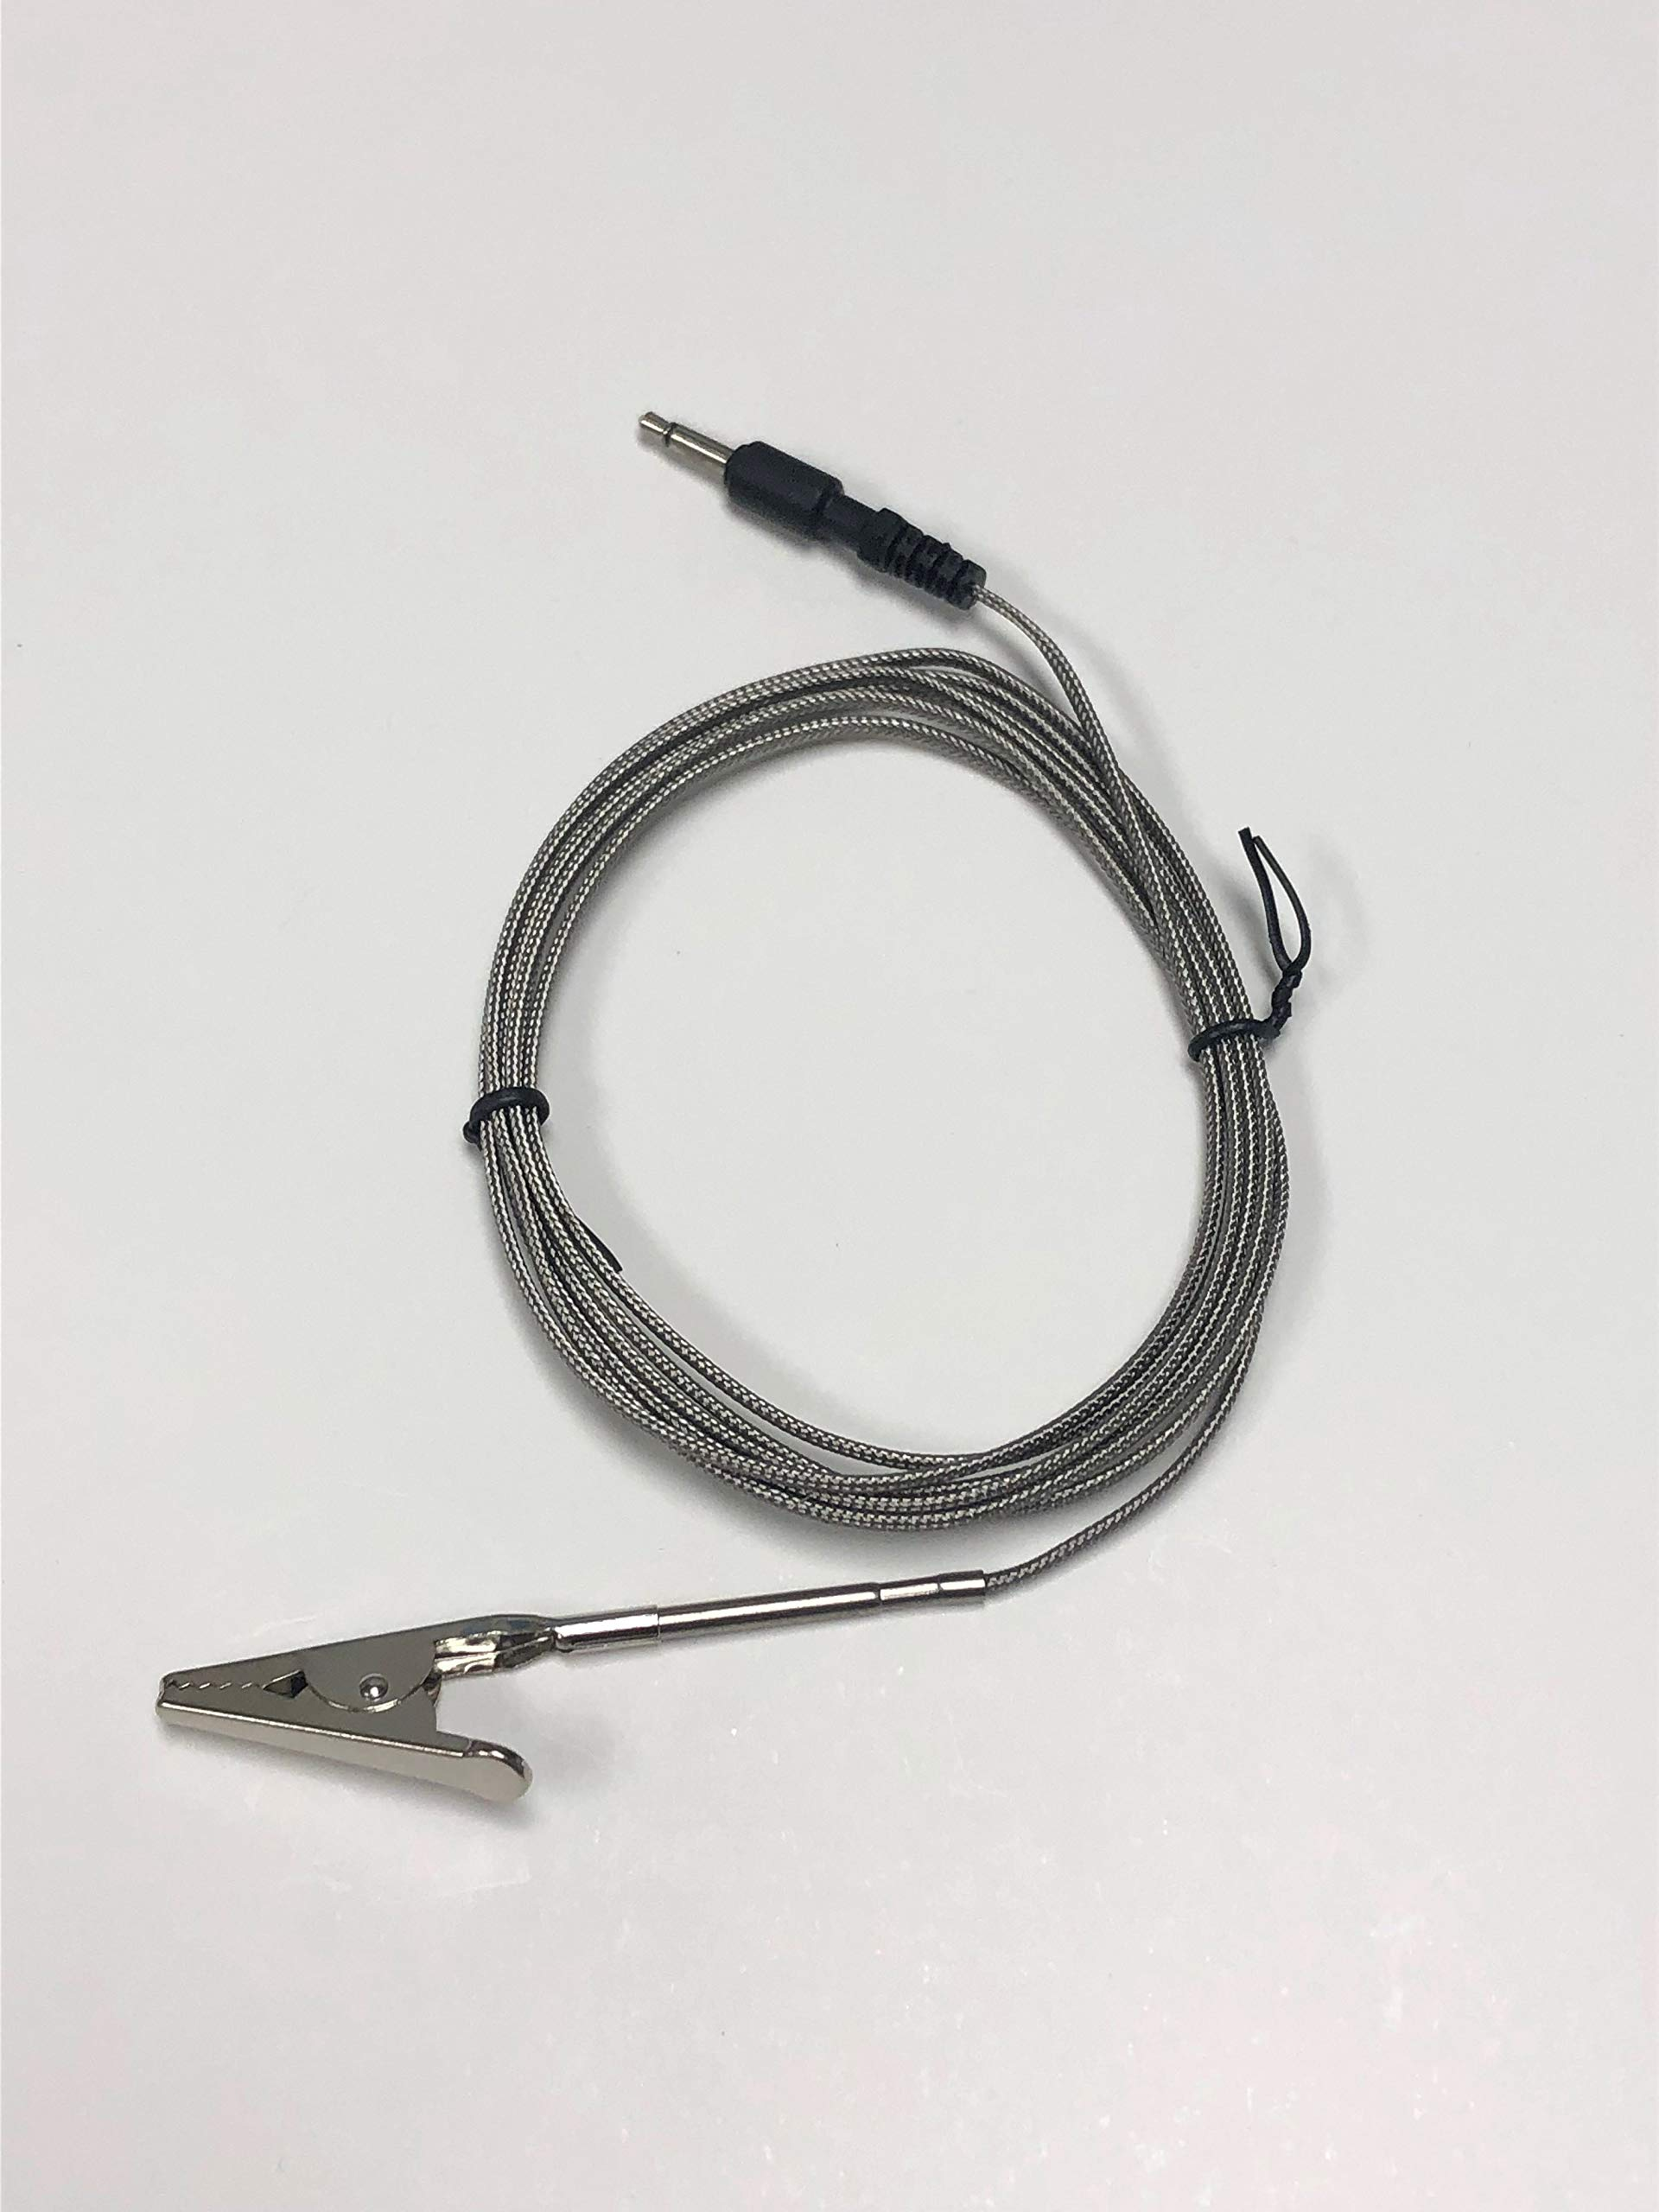 Flame Boss High Temperature Pit Probe with Straight Plug by Flame Boss